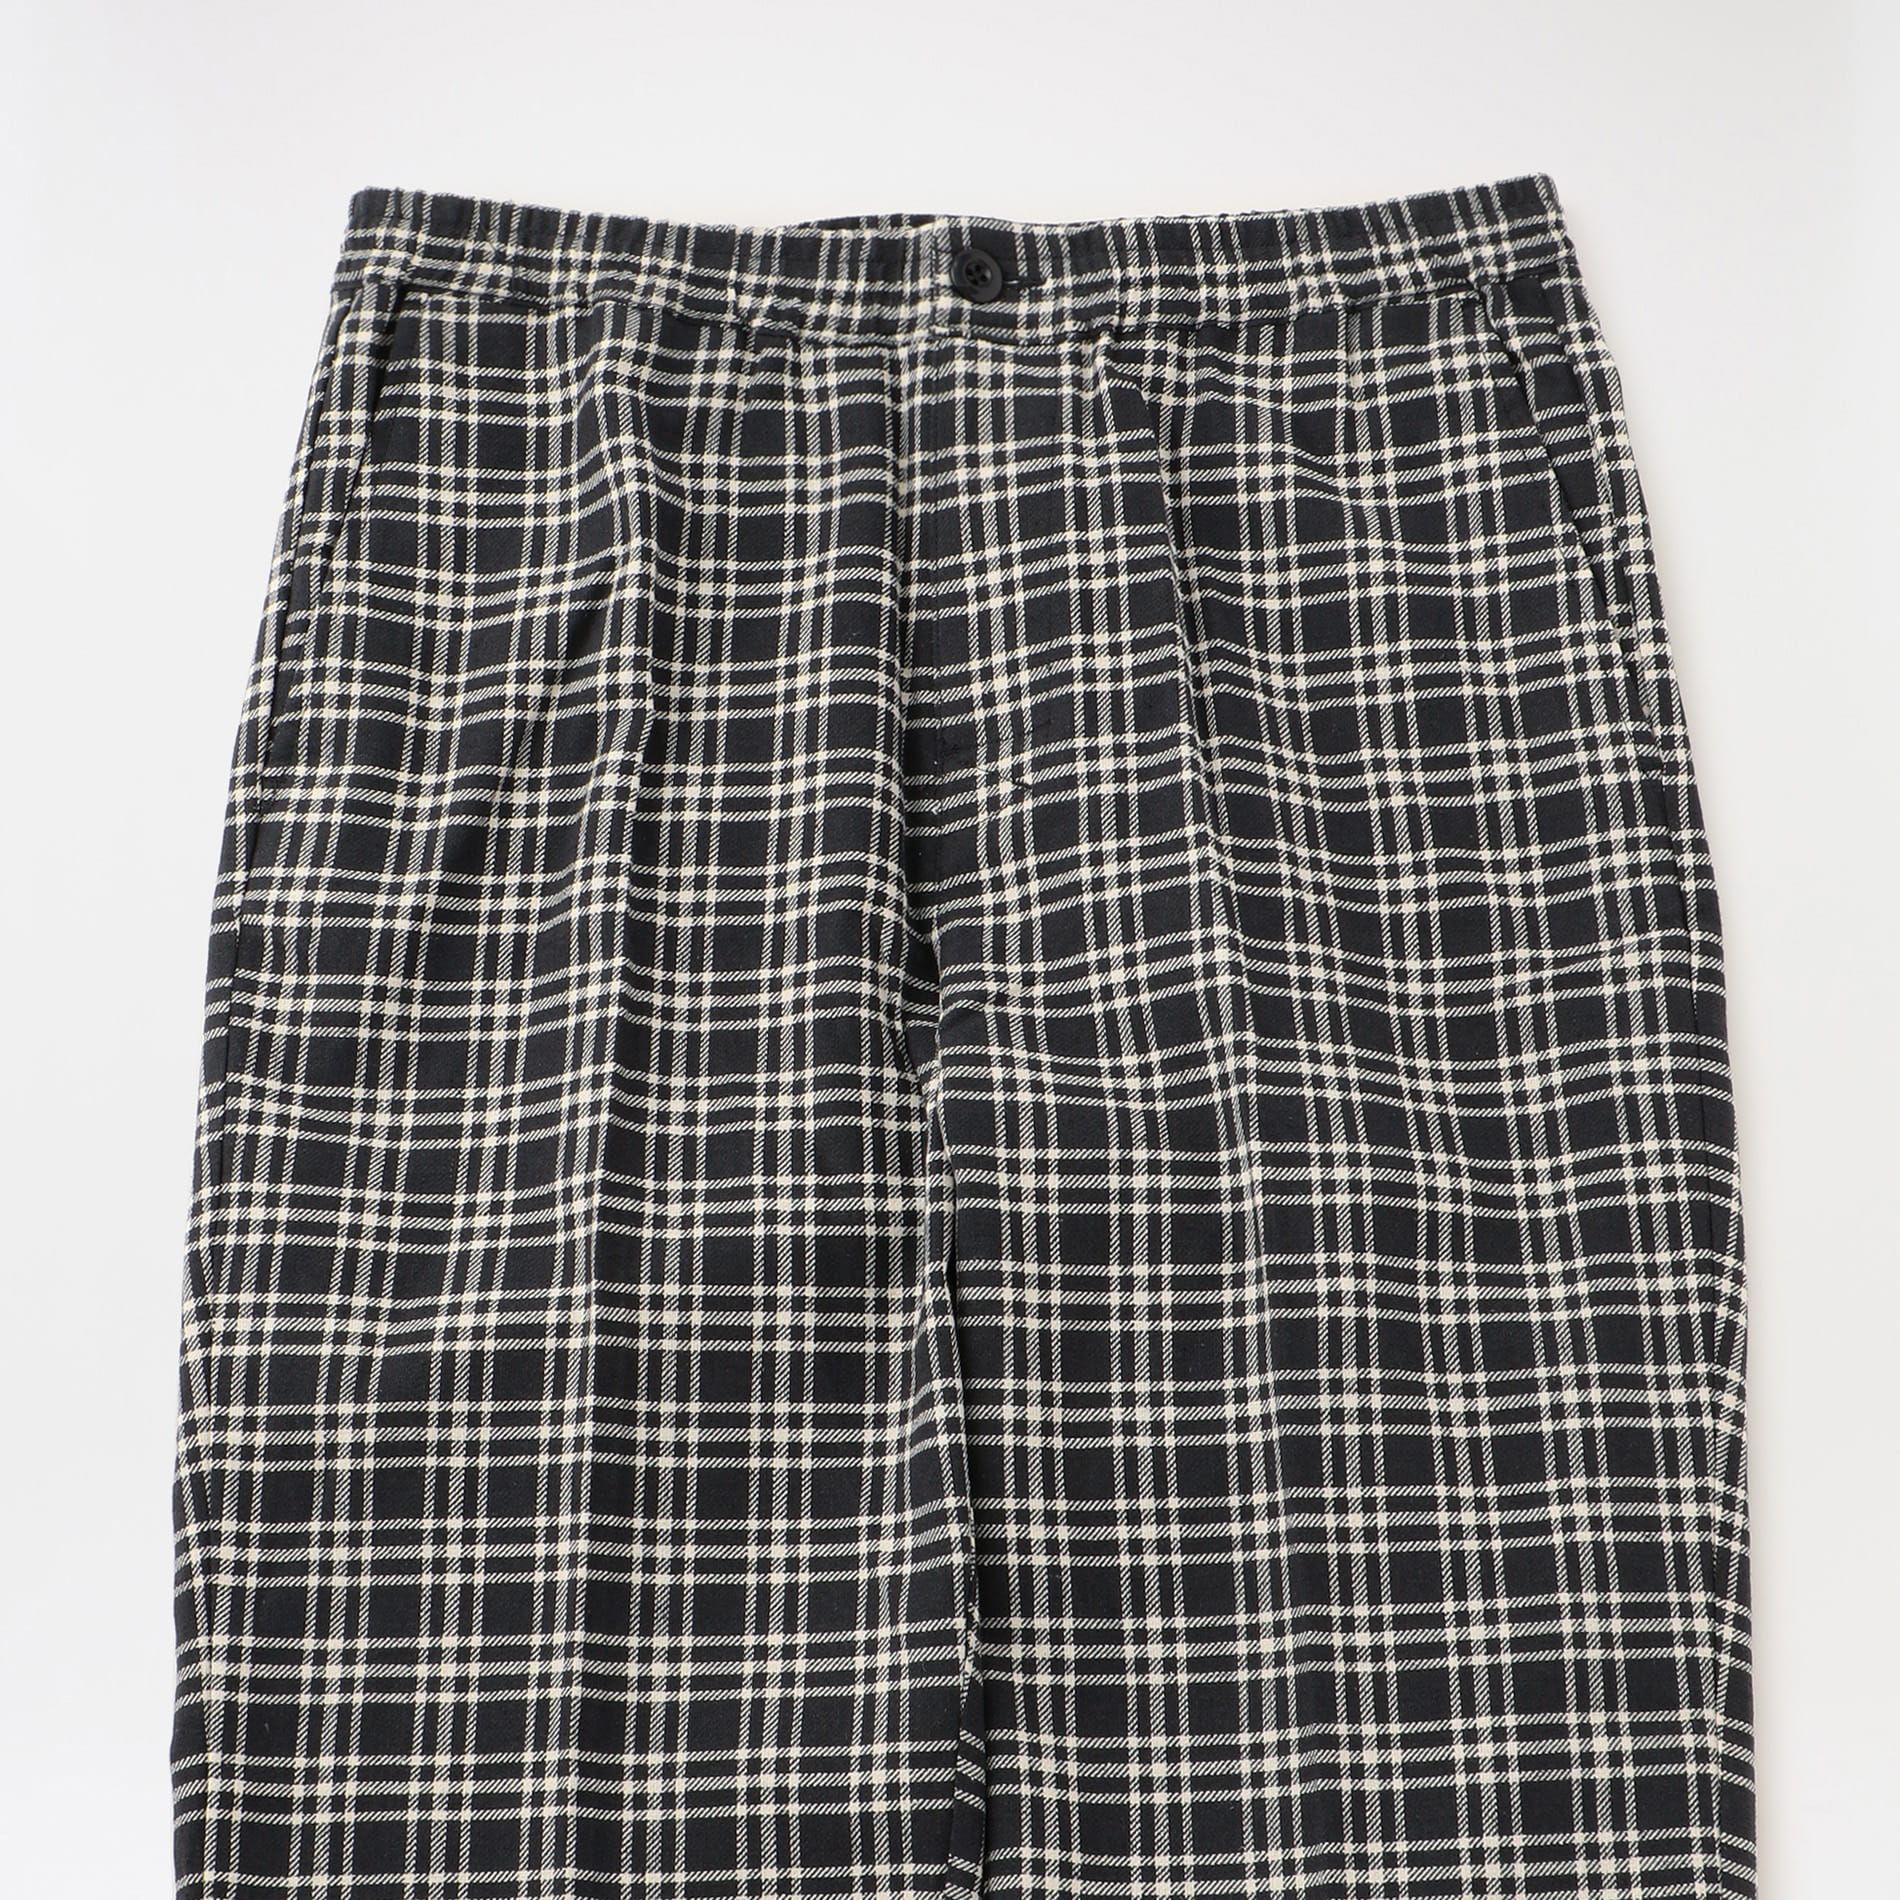 【Stussy】MEN Plaid Linen Bryan Pant 116438